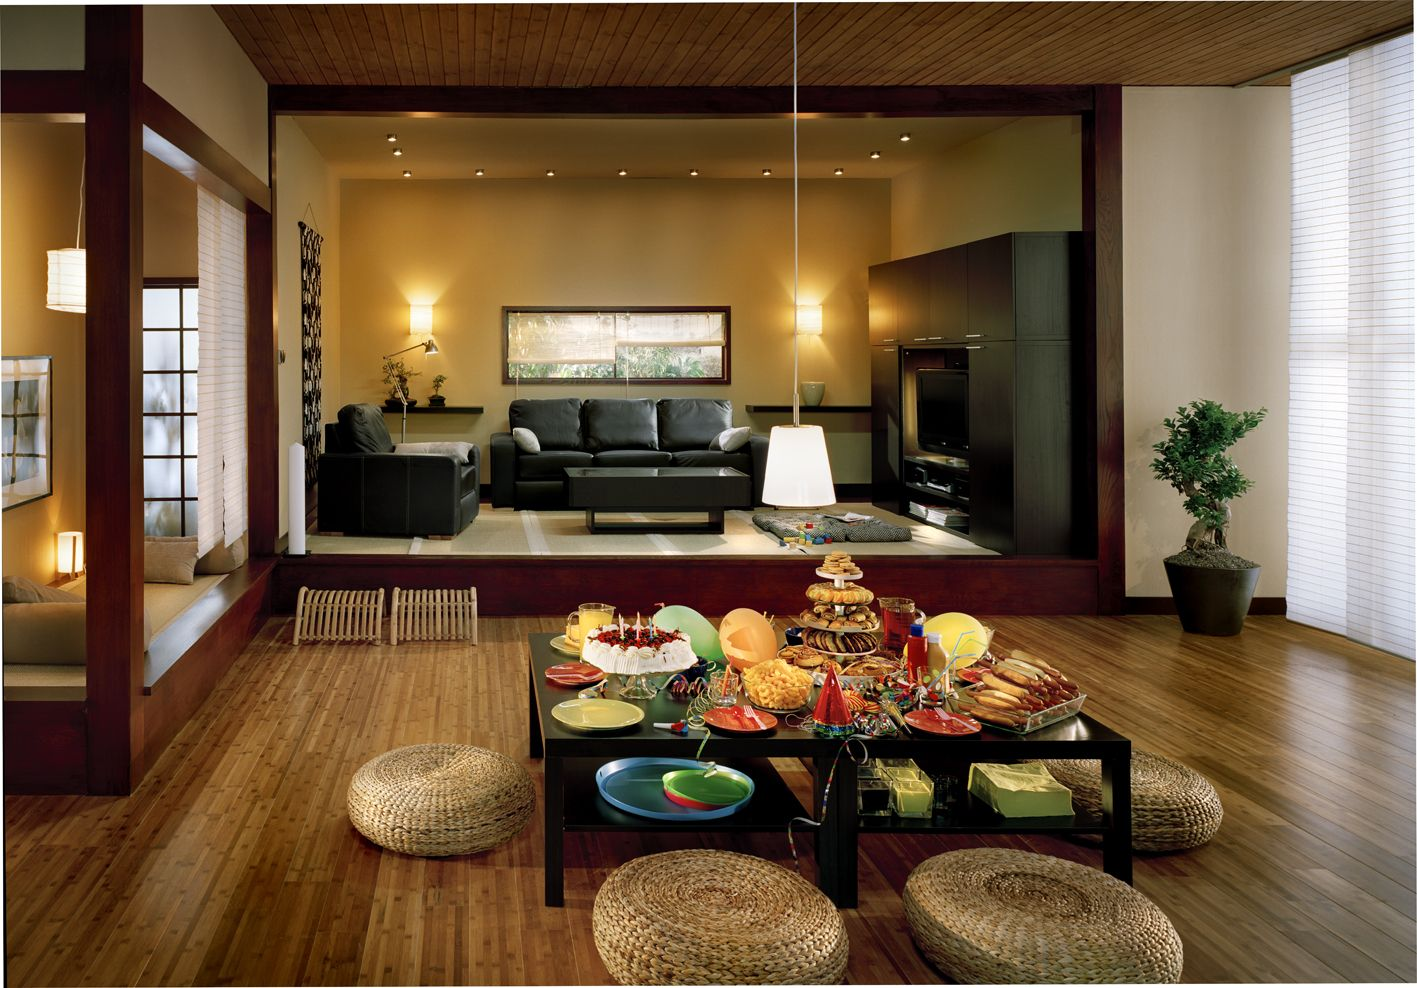 Low Dining Table Ideas for Home Decor : Japanese Style Low Wooden Dining  Table And Rattan Seating Also Pendant Lamp